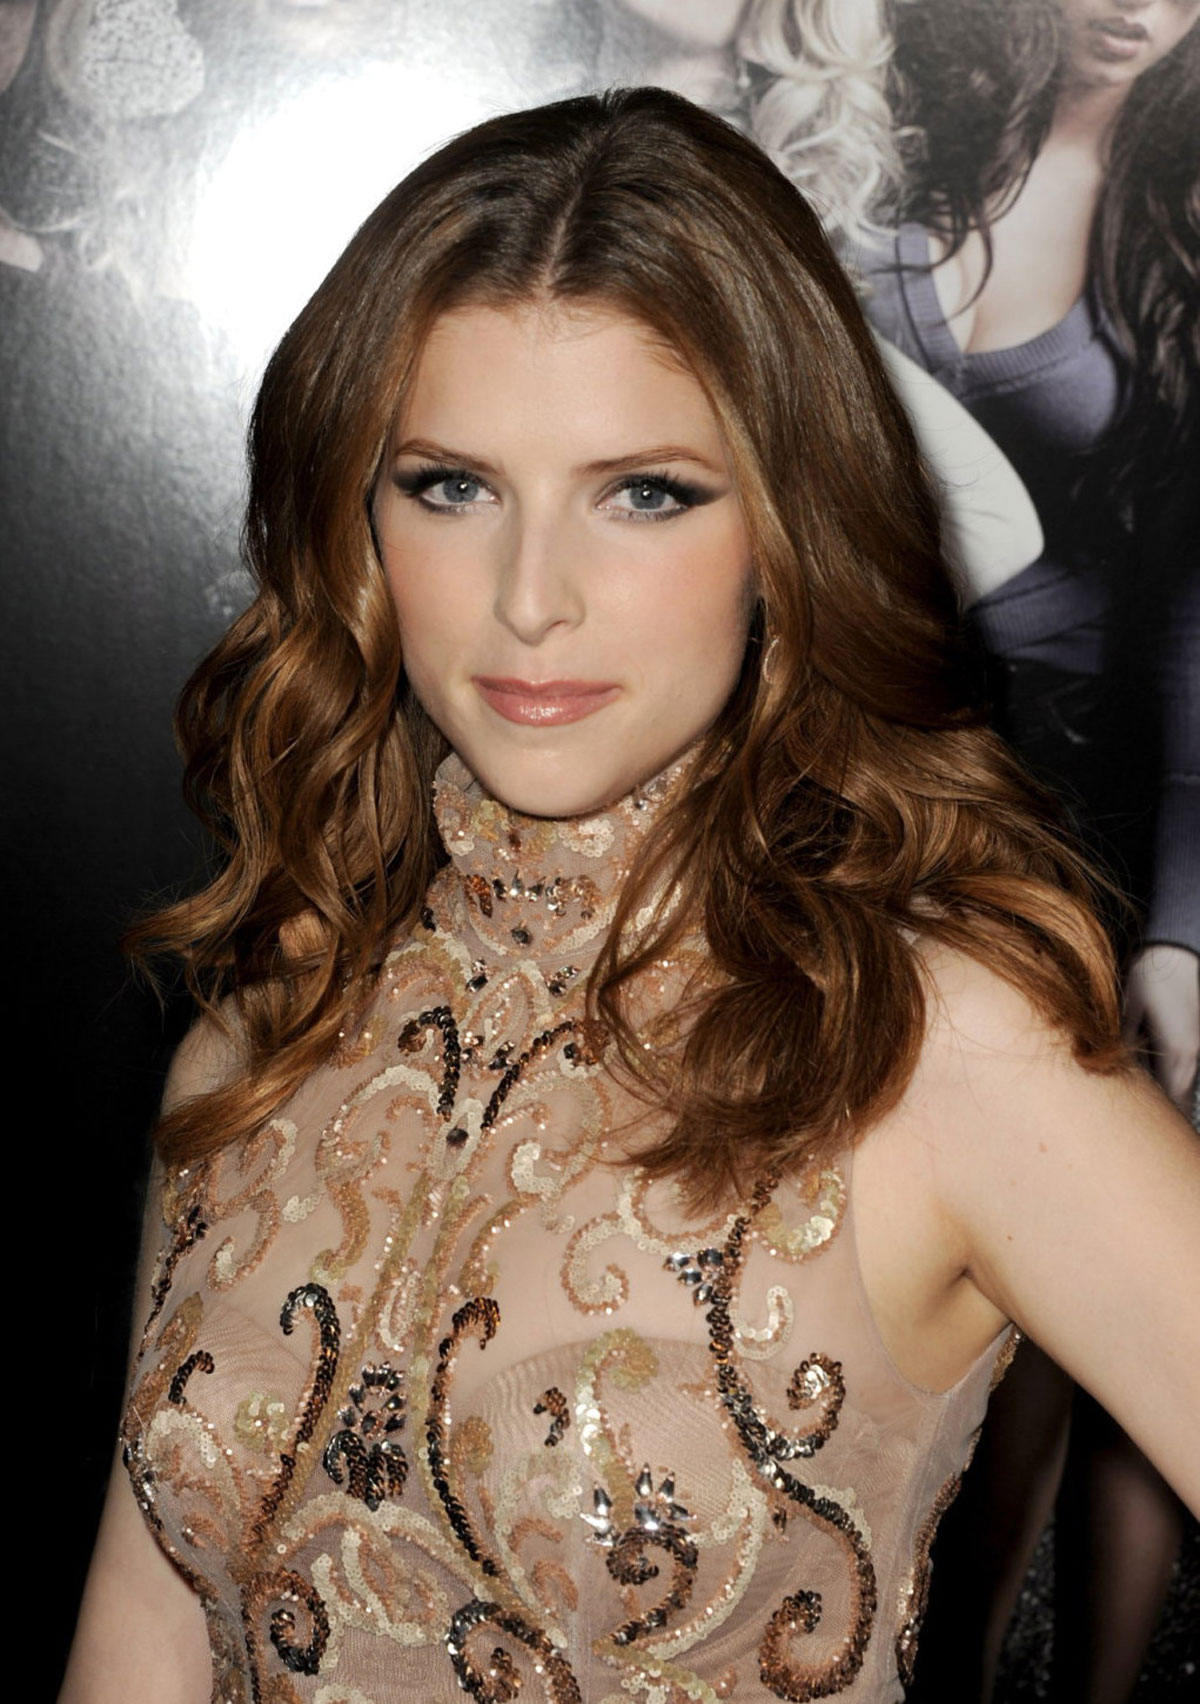 anna kendrick the sound of silenceanna kendrick cups, anna kendrick the sound of silence, anna kendrick cups скачать, anna kendrick the sound of silence скачать, anna kendrick cups lyrics, anna kendrick cups минус, anna kendrick cups перевод, anna kendrick сумерки, anna kendrick and justin timberlake, anna kendrick films, anna kendrick twitter, anna kendrick gif, anna kendrick movies, anna kendrick фото, anna kendrick cups аккорды, anna kendrick cups chords, anna kendrick wallpaper, anna kendrick — true colors, anna kendrick кинопоиск, anna kendrick tumblr